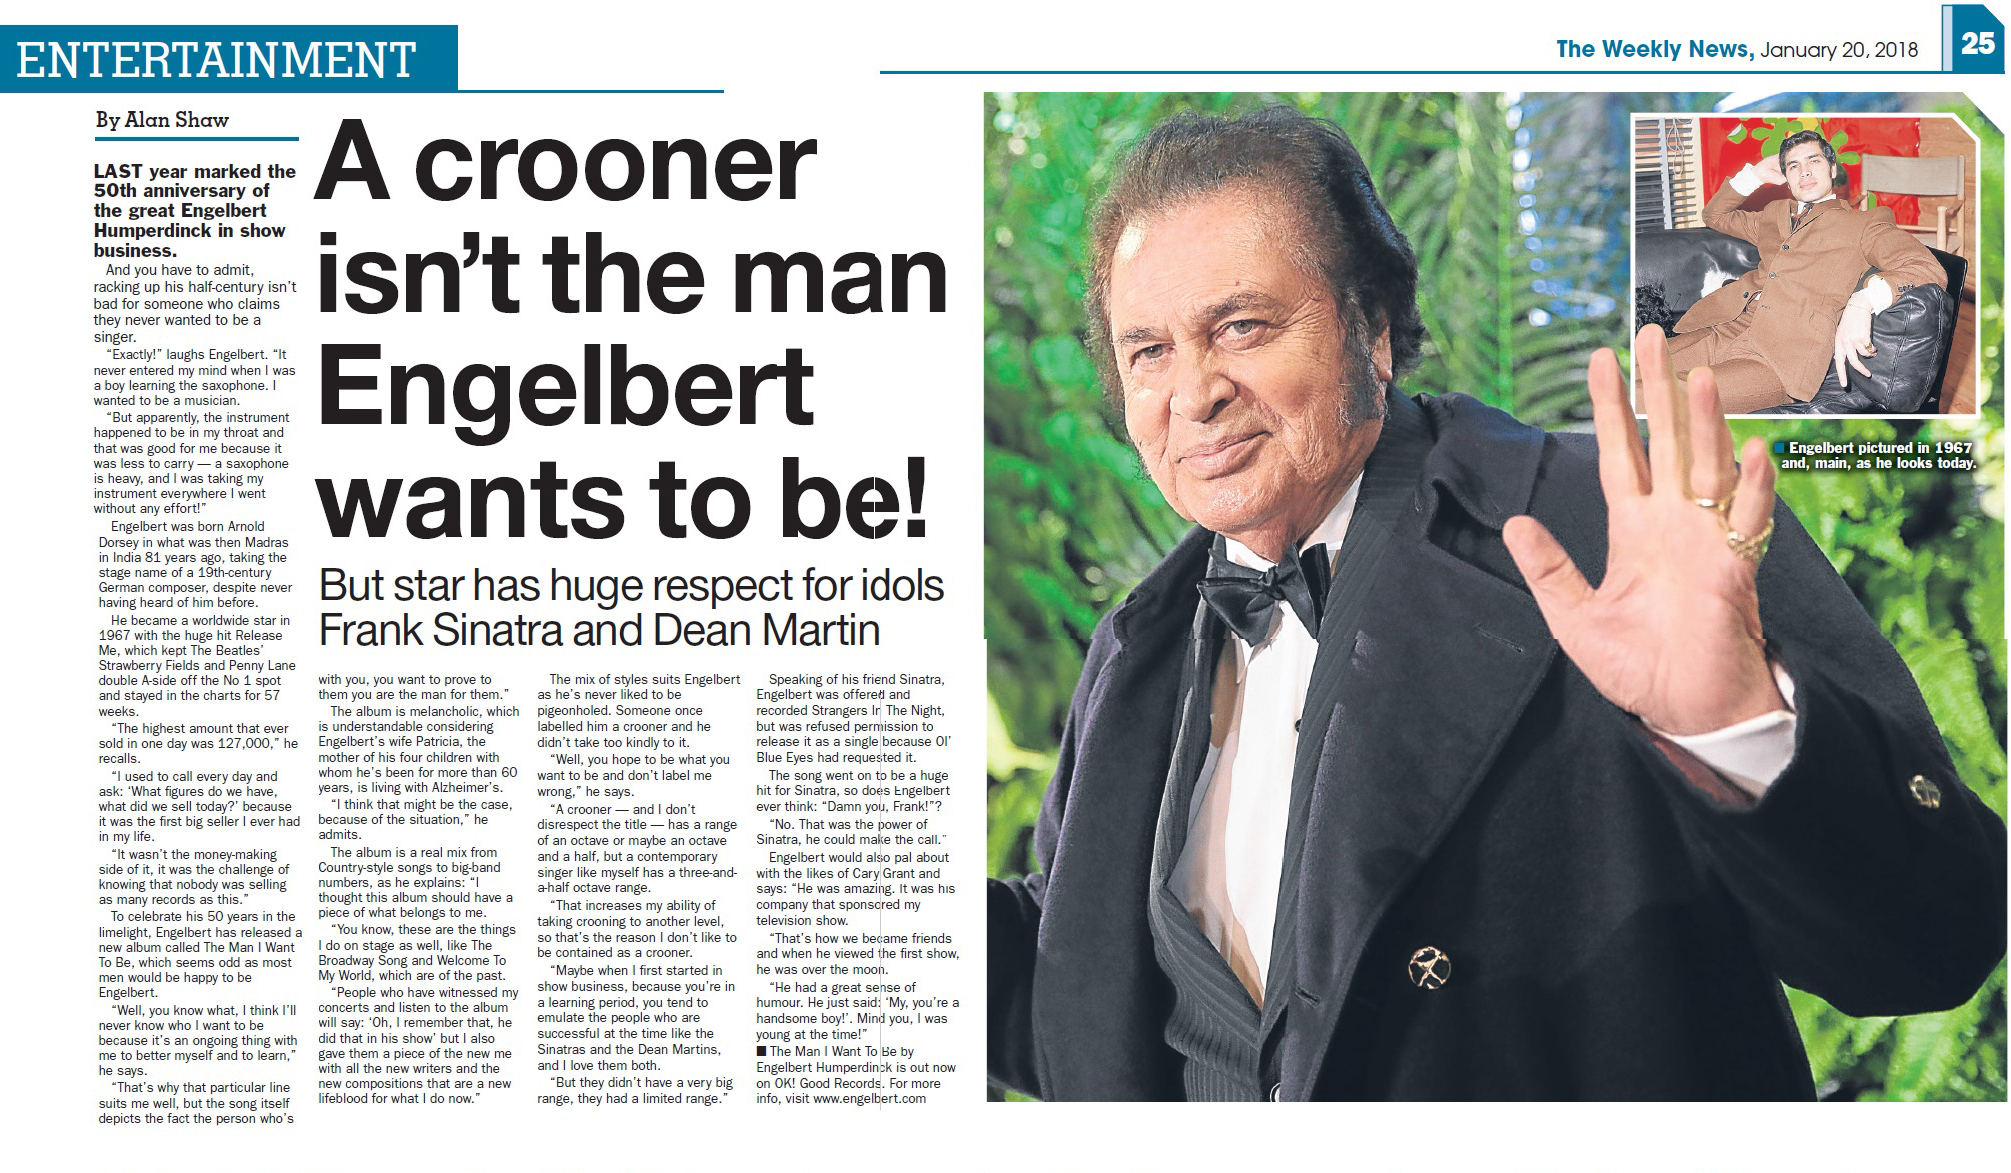 engelbert humperdinck the weekly news the man i want to be